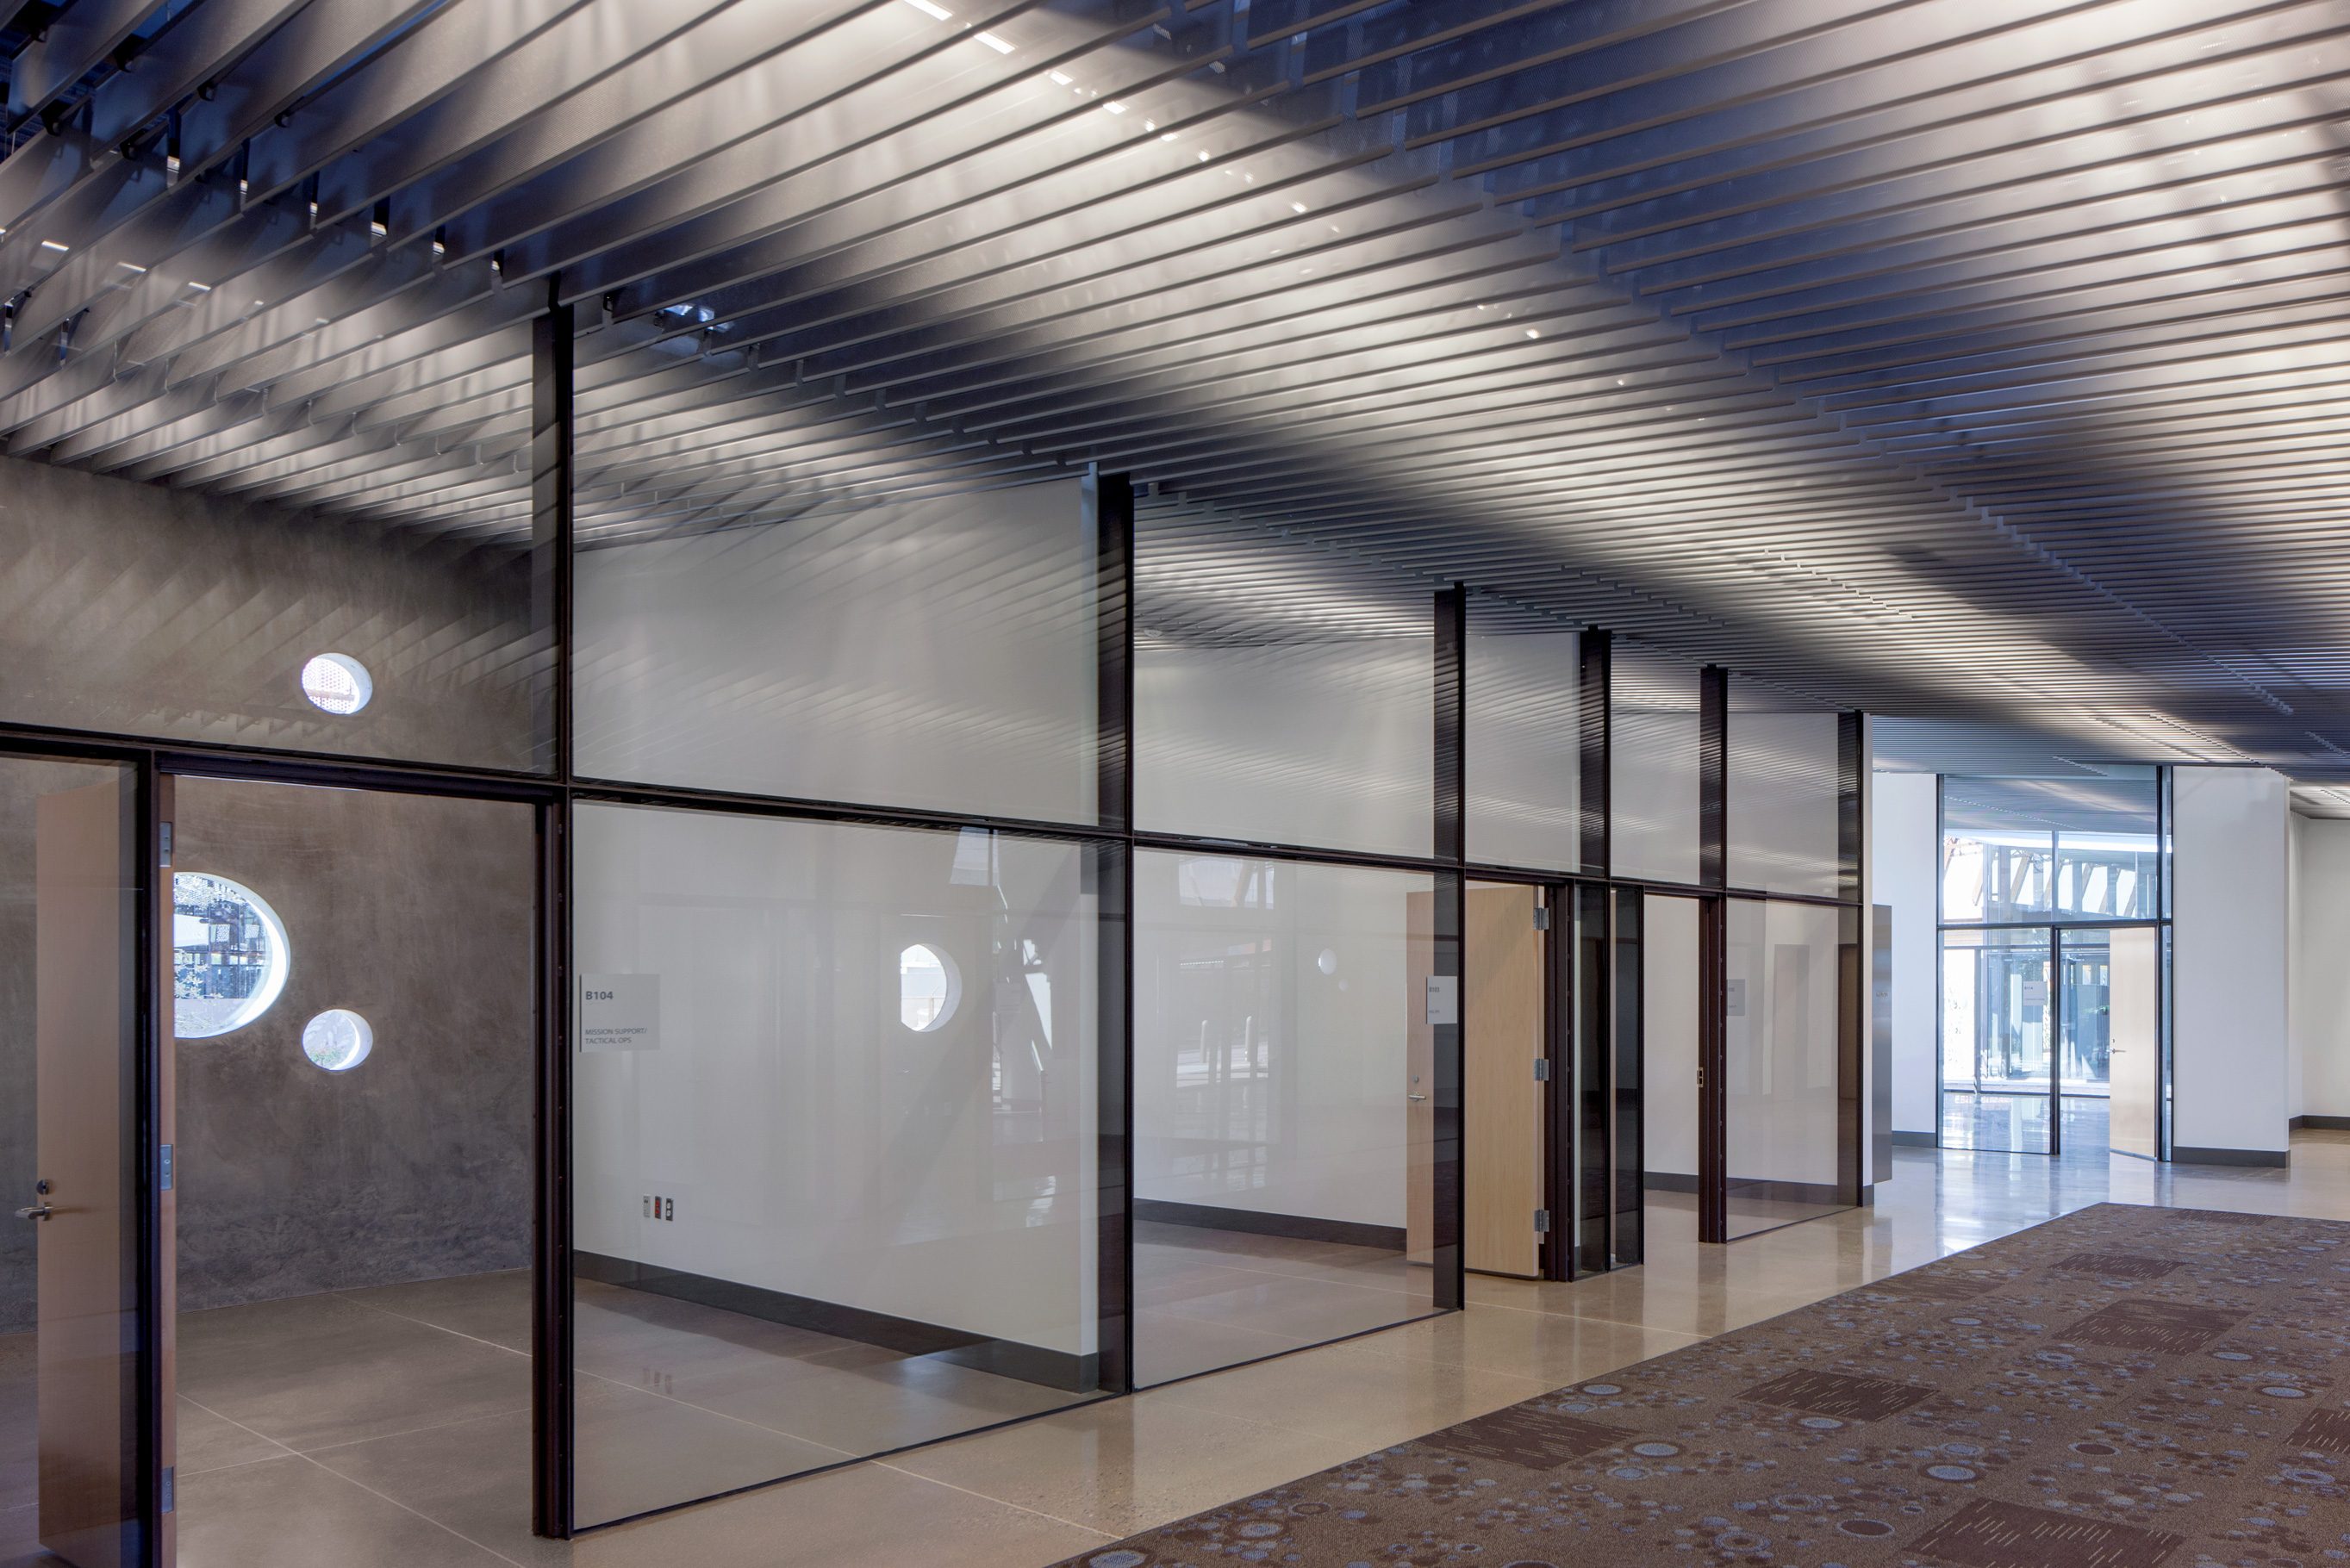 The perforated metal fin ceiling system created a louver that allowed lights, diffusers, sprinklers and AV systems to be stored together out of sight.